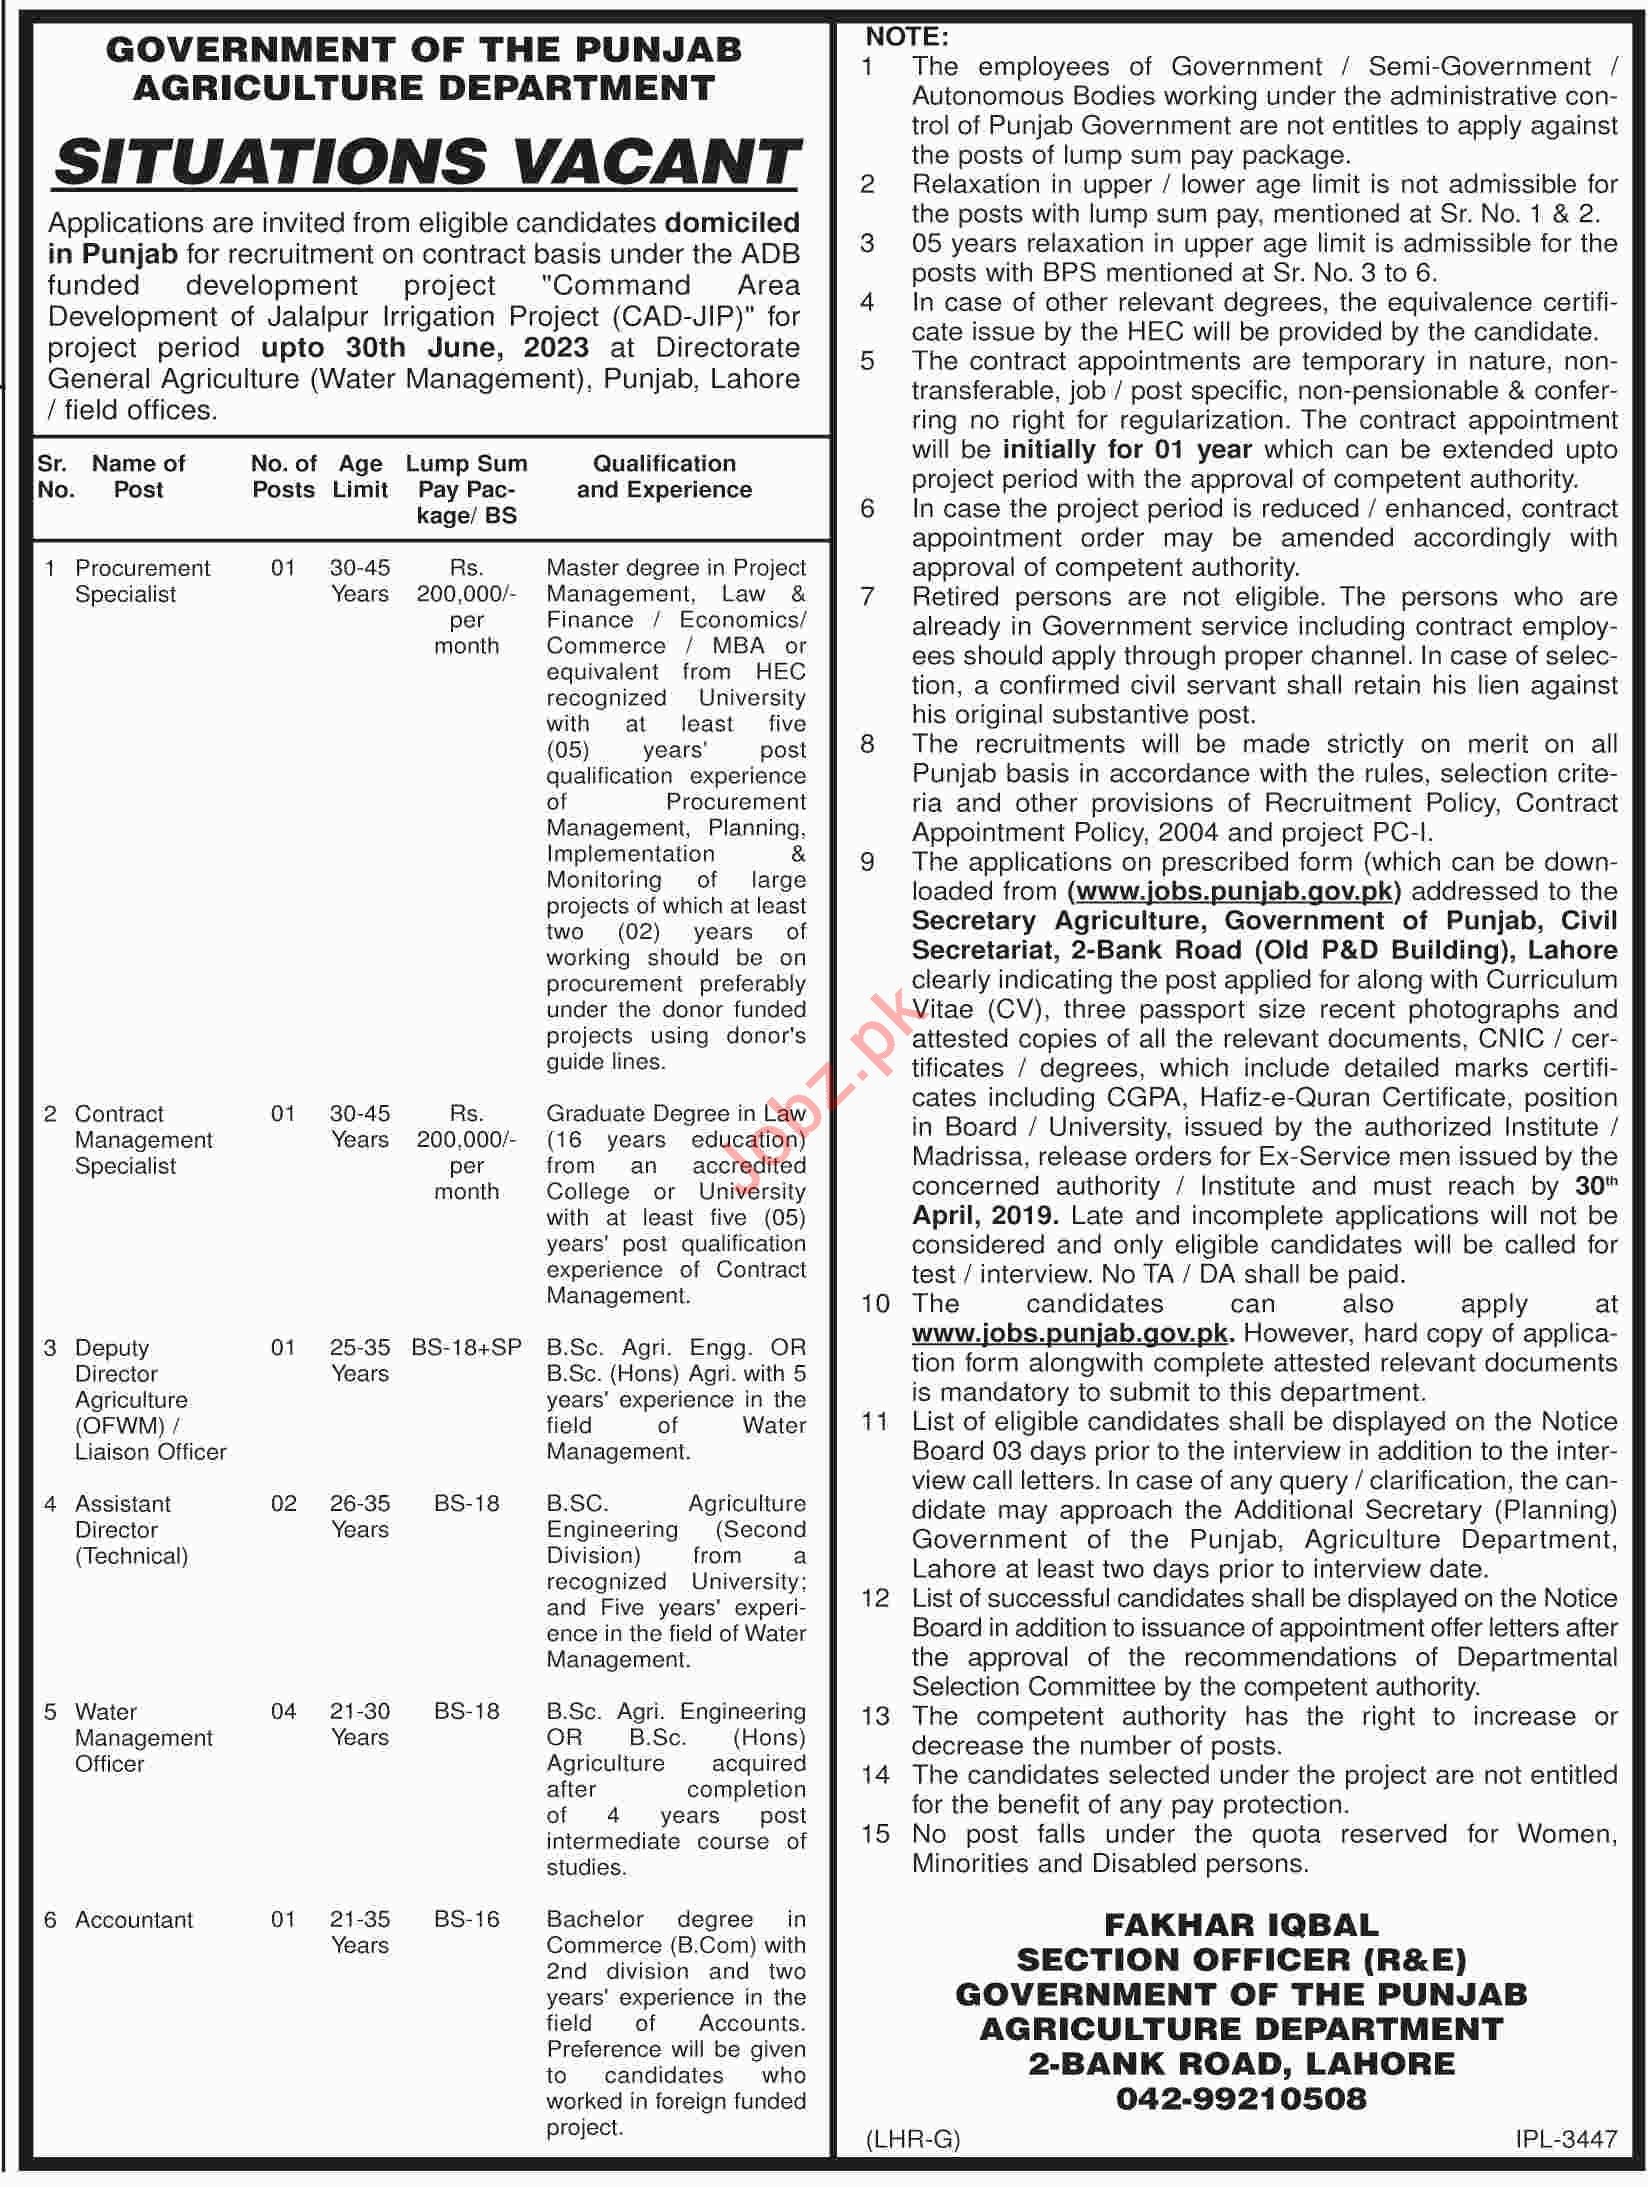 Punjab Agriculture Department Jobs 2019 for Specialists